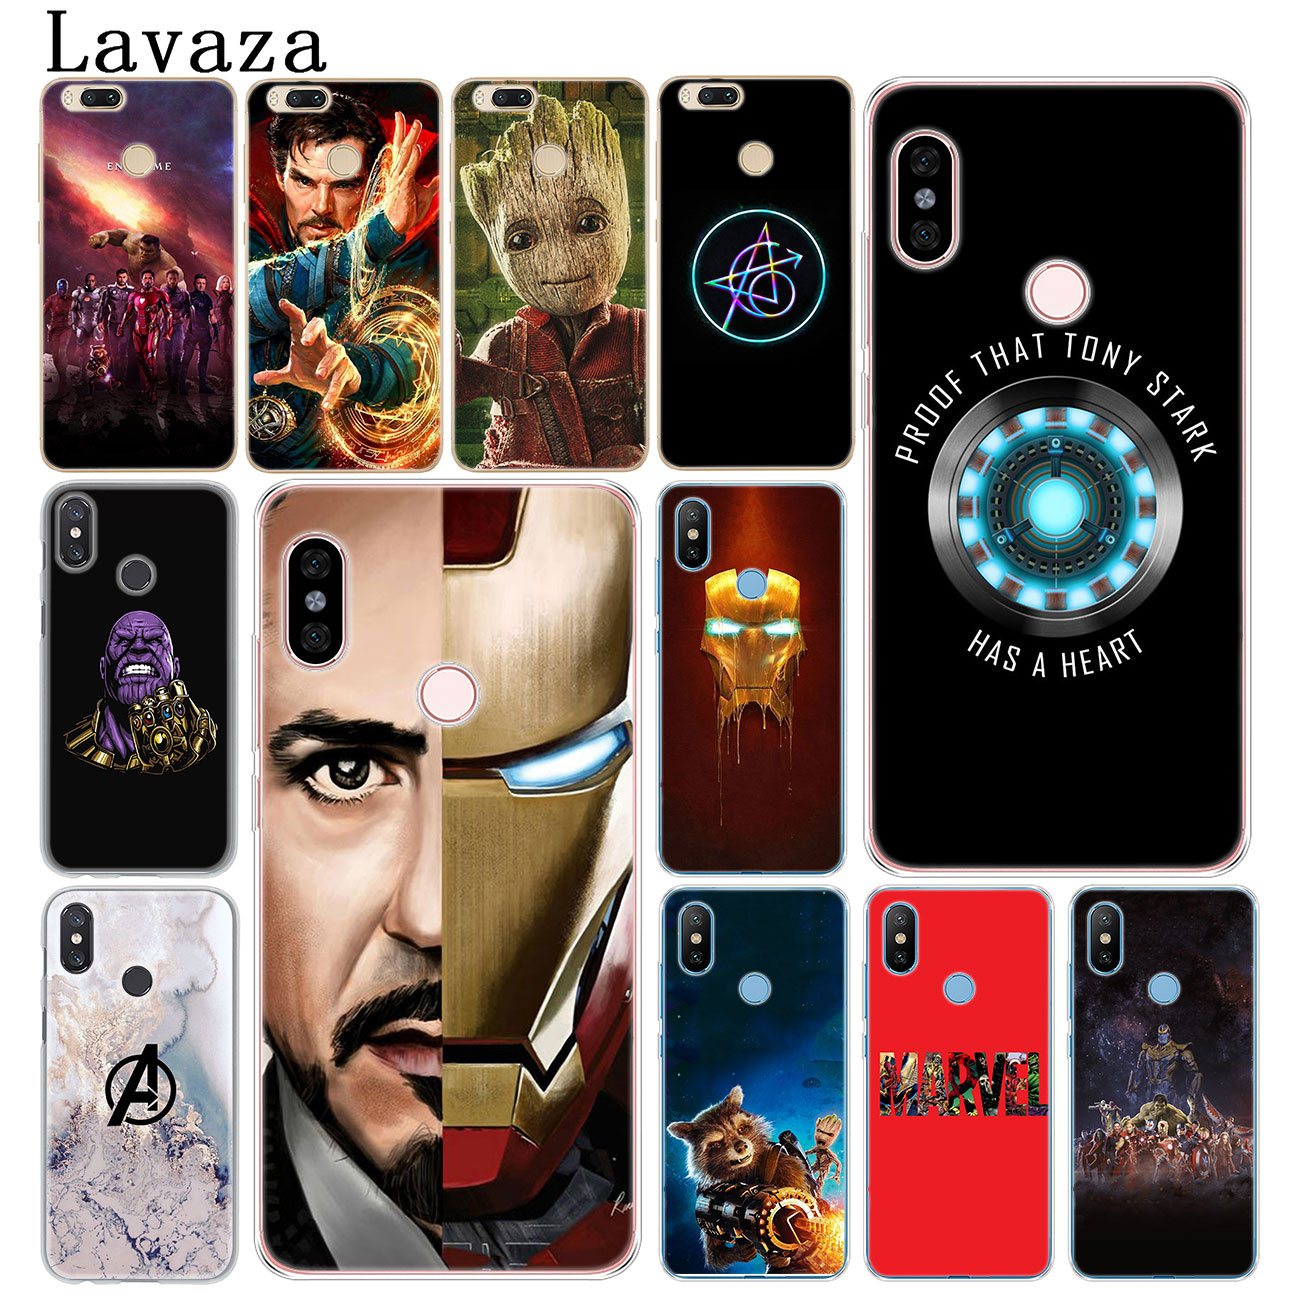 Lavaza <font><b>Marvel</b></font> Avengers Endgame Thanos Iron Man Phone <font><b>Case</b></font> for <font><b>Xiaomi</b></font> <font><b>Redmi</b></font> K20 Pro 8A 7A 5A 6A 4A <font><b>Note</b></font> 8 7 5 <font><b>4</b></font> 4X 6 Pro Cover image